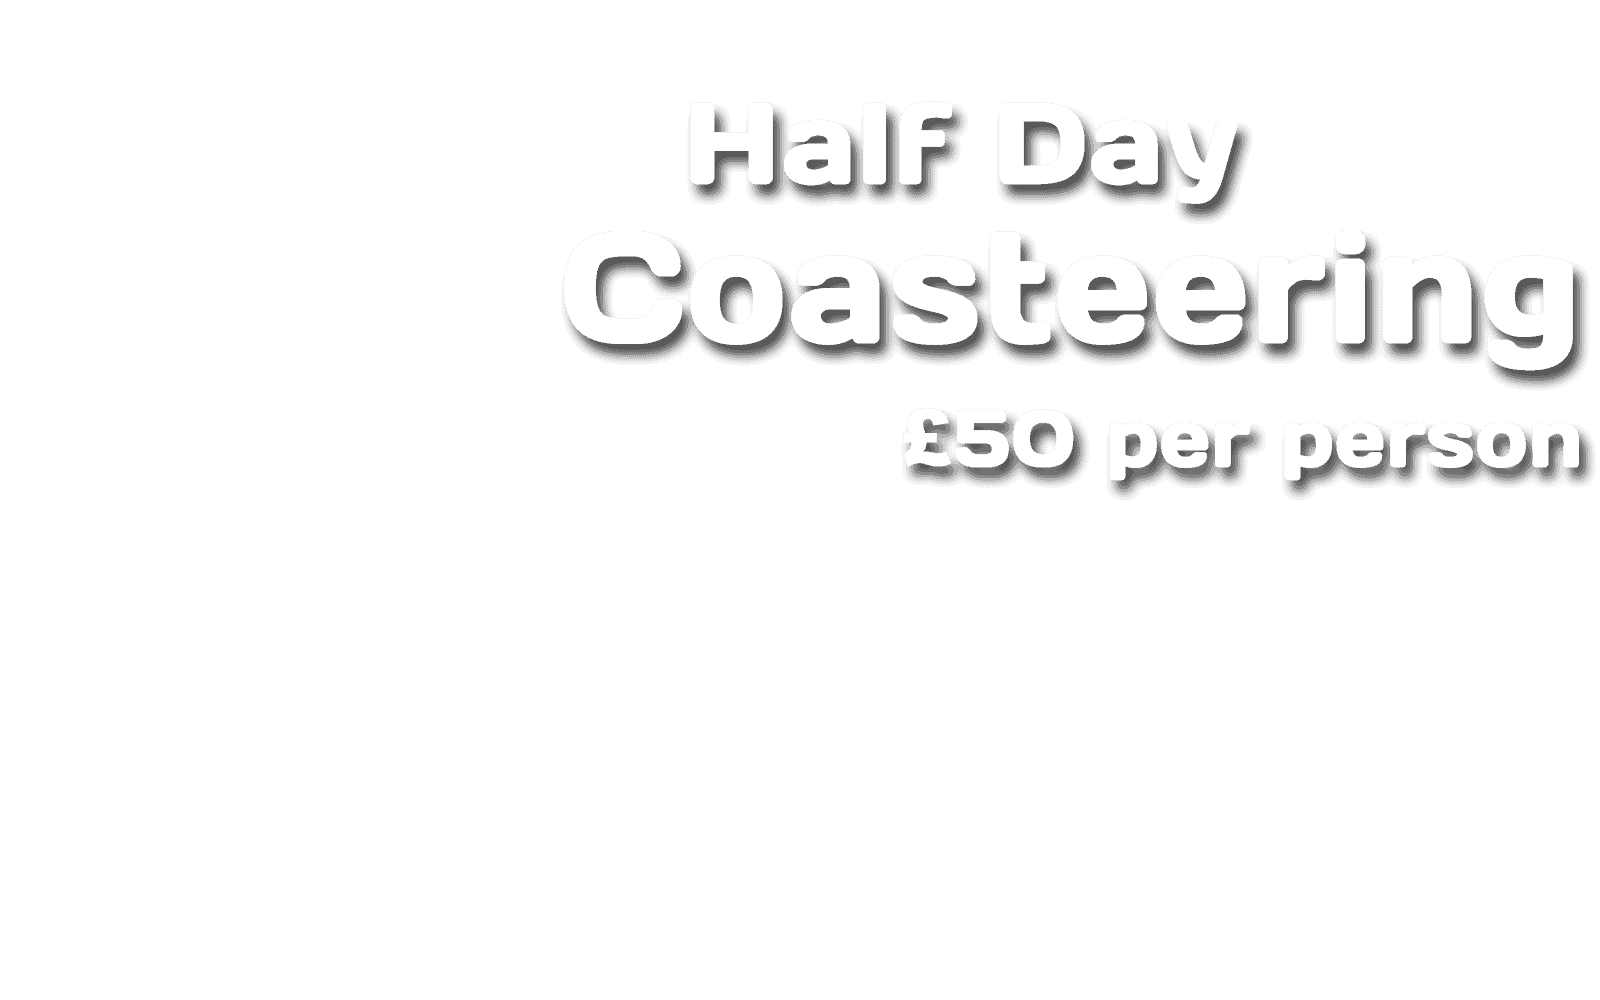 Pembrokeshire Coasteering Prices - Half Day Coasteering at the Blue Lagoon Abereiddy near St Davids costs £50 per person